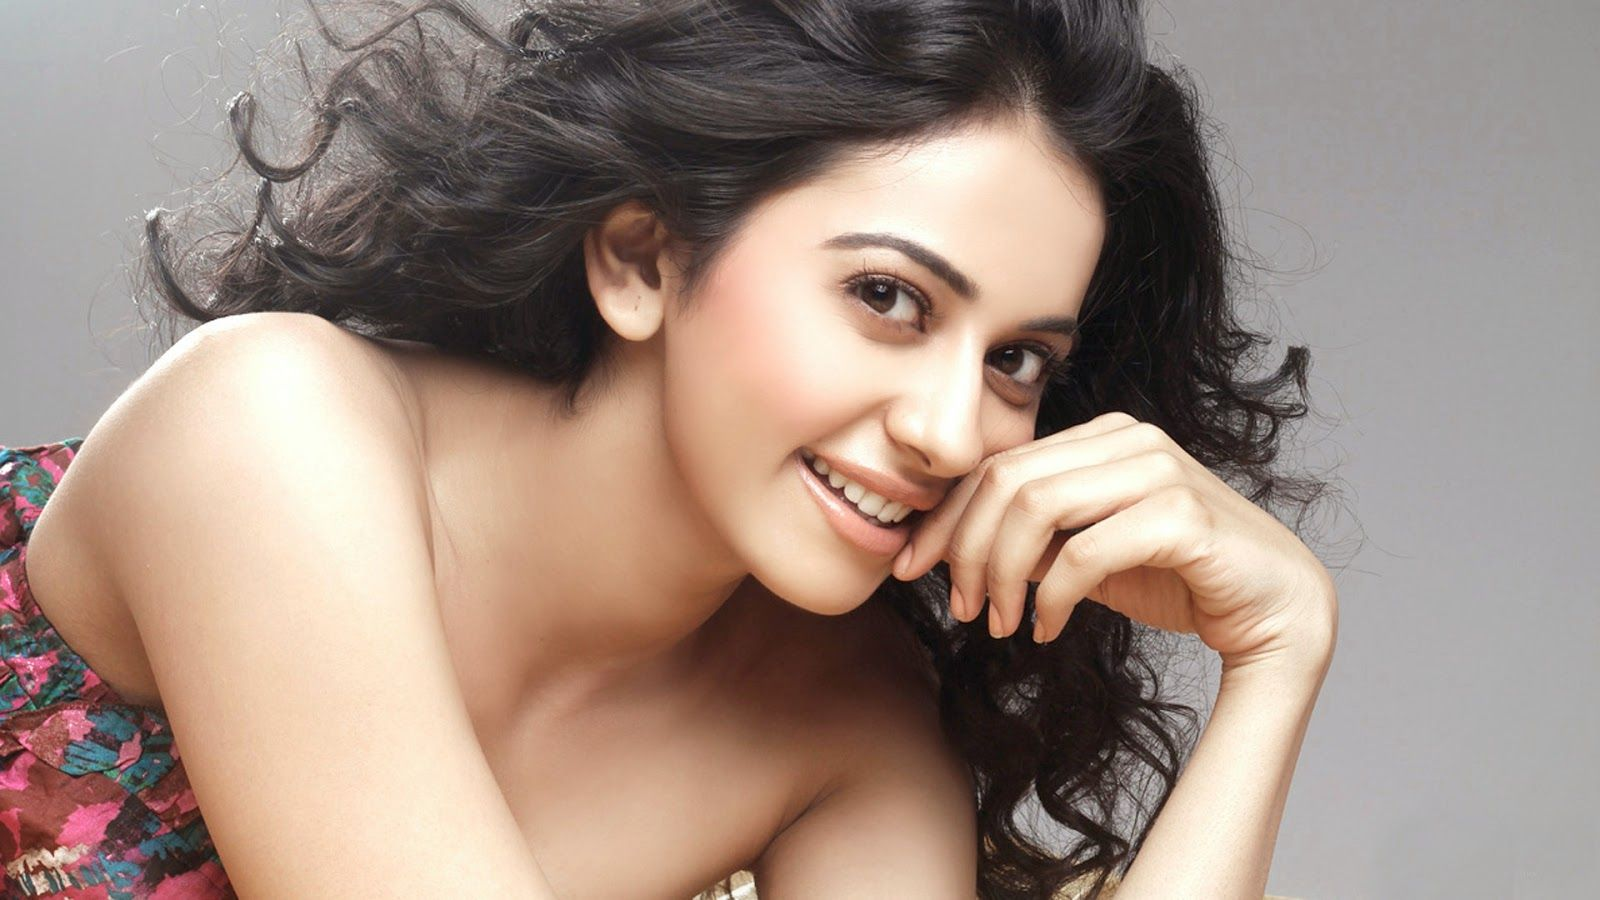 Hd wallpaper yaariyan - Yaariyan Movie Actres Rakul Preet Singh Images And Wallpapers